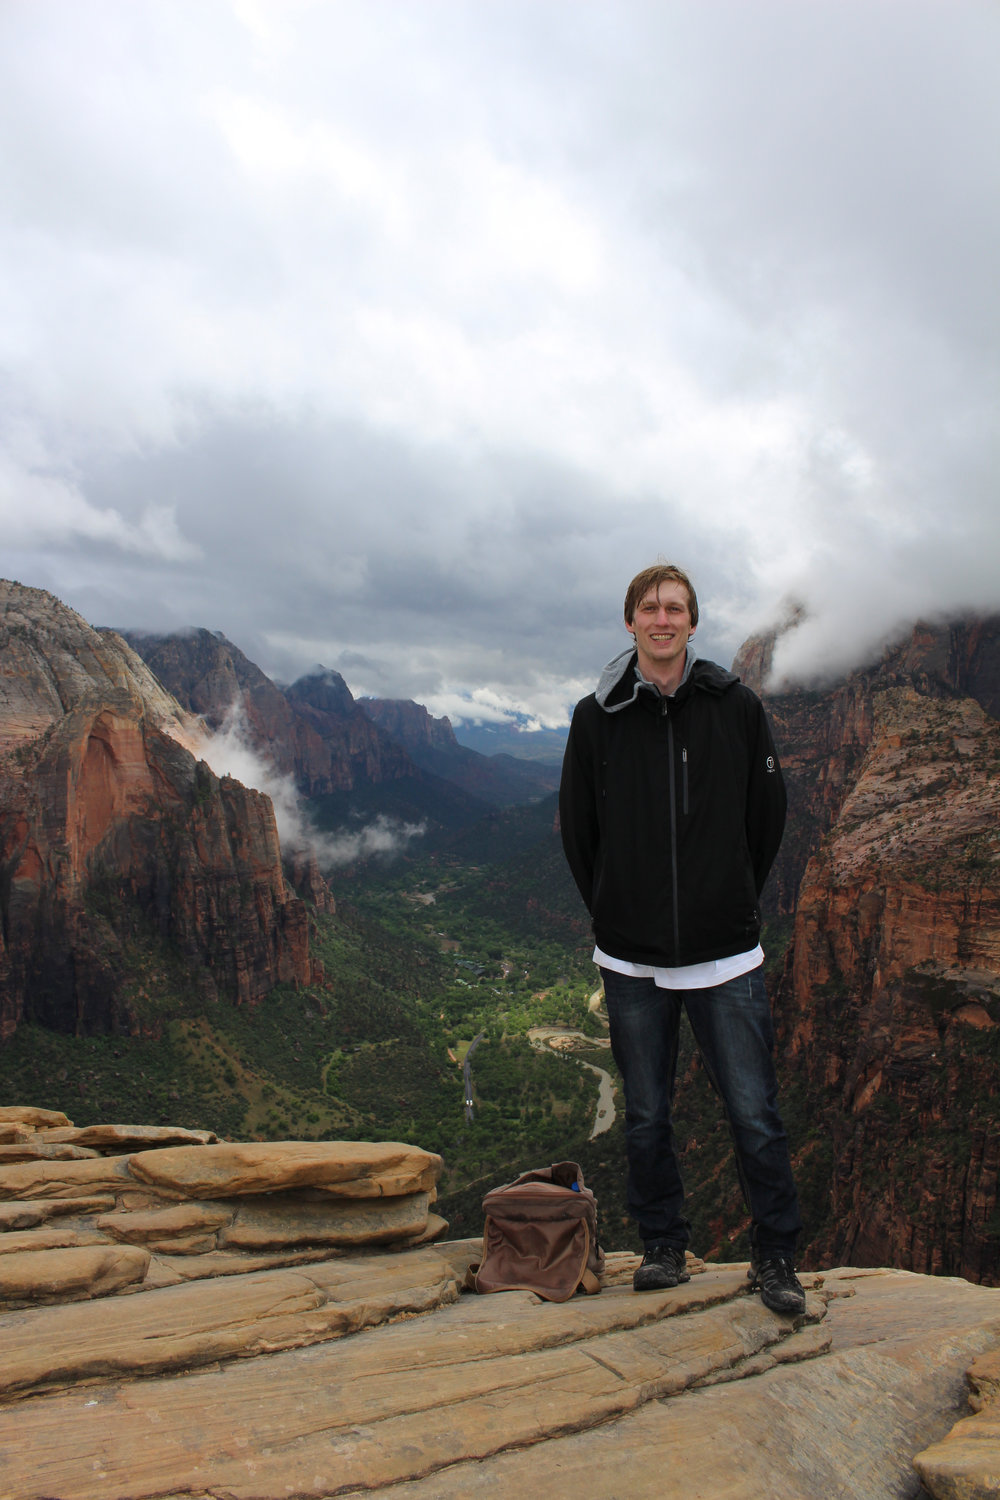 Koch visited the Angels Landing trail in Zion National Park in Utah last month.